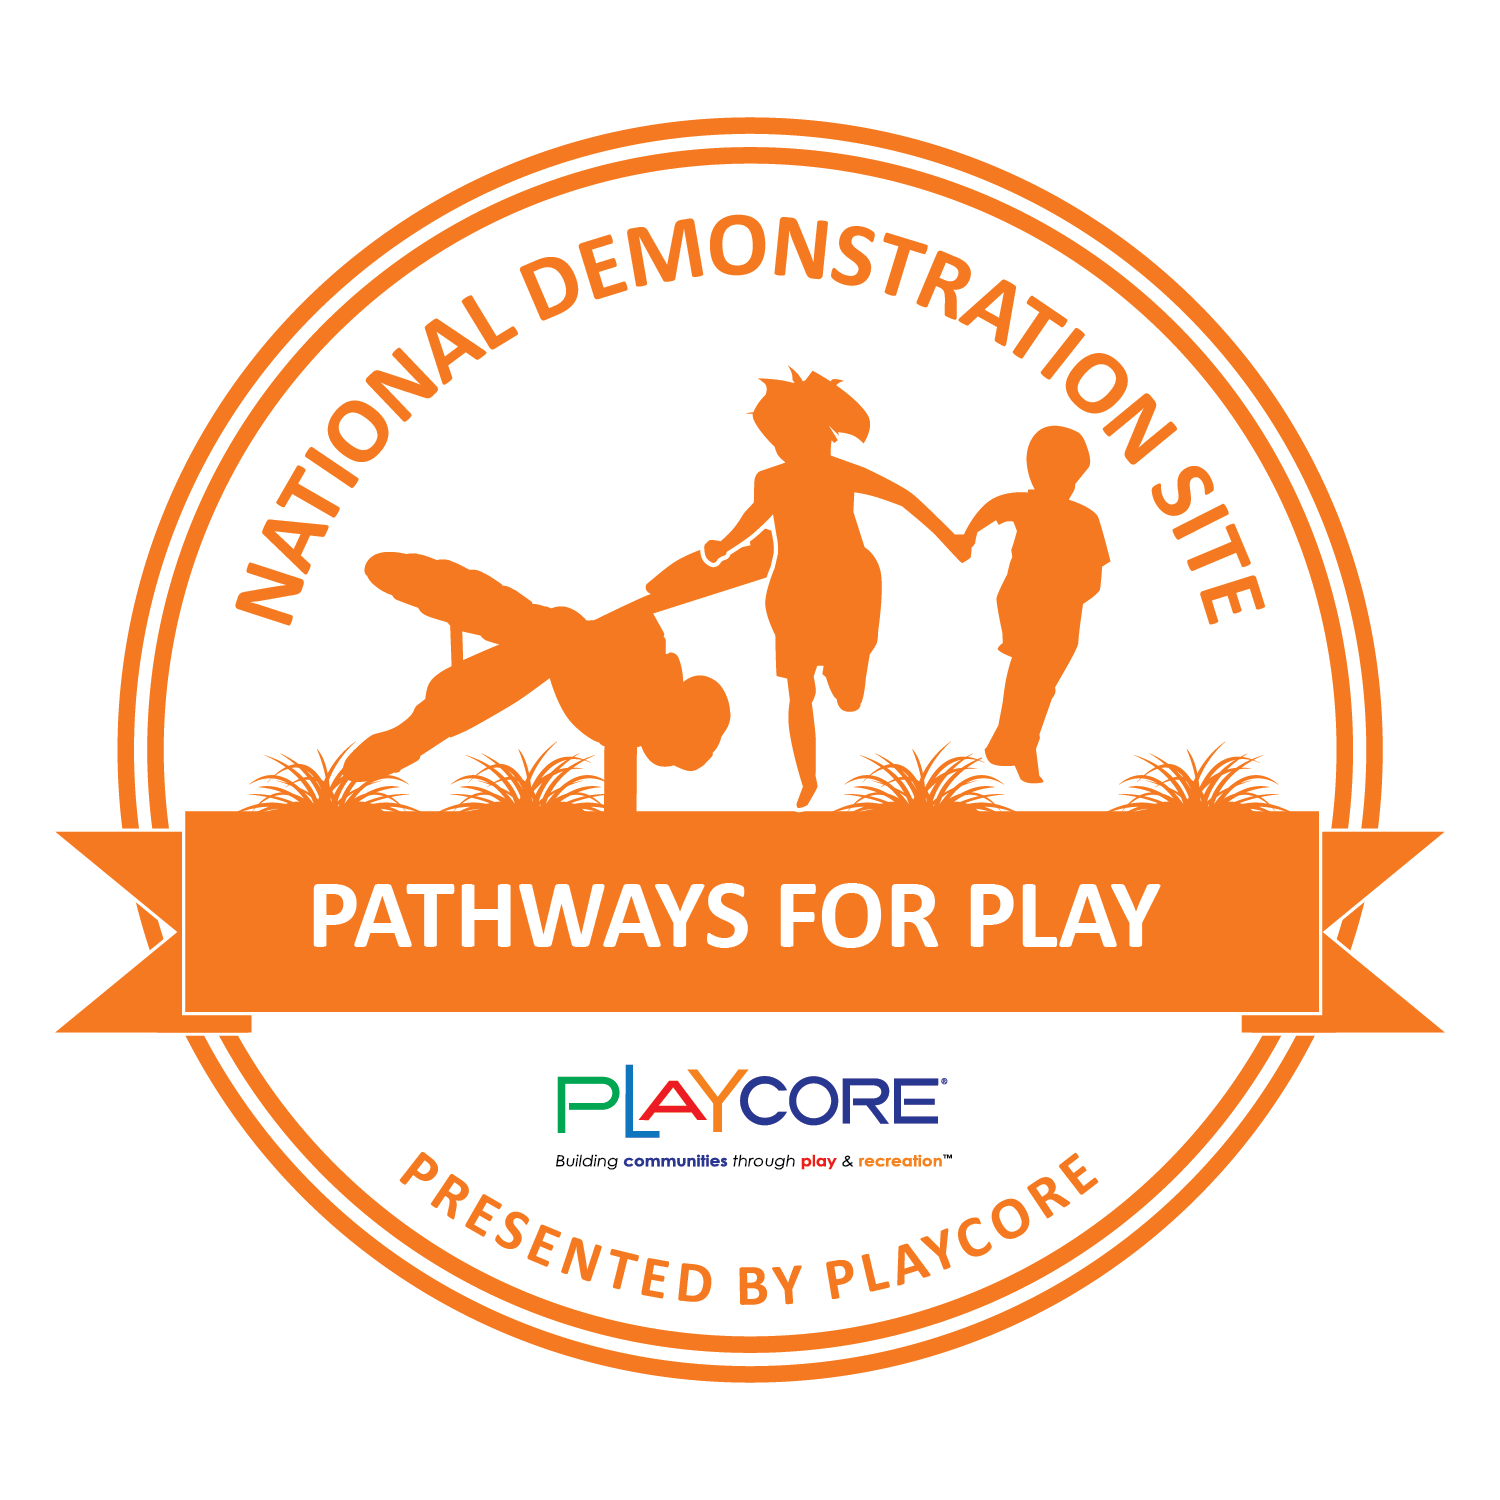 National Demonstration Site Seal - Pathways for Play